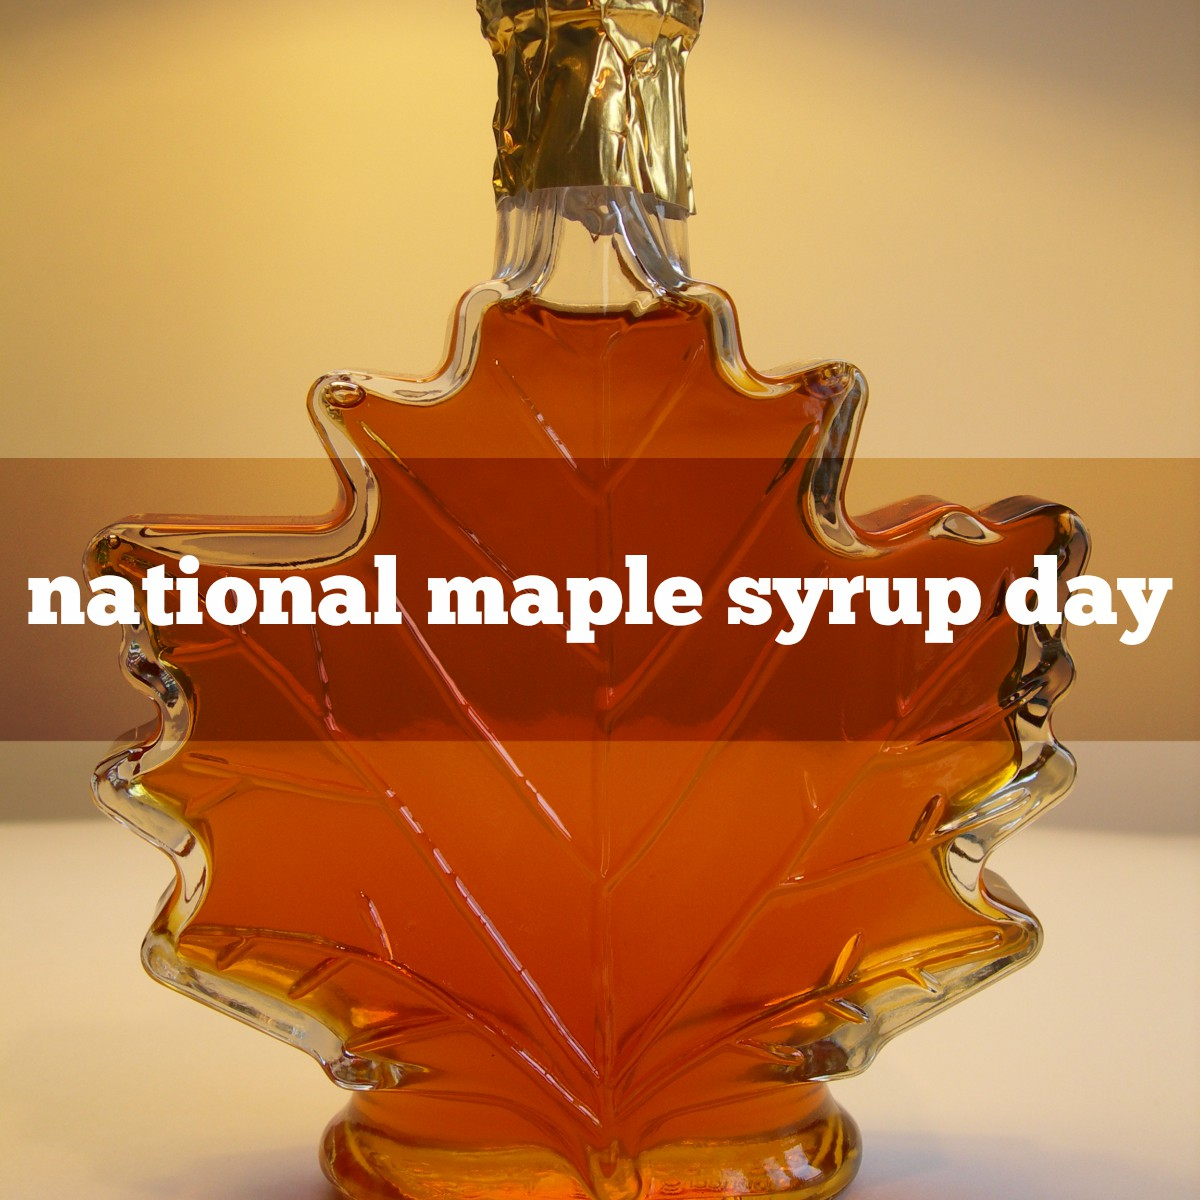 December 17th is National Maple Syrup Day | Foodimentary ...